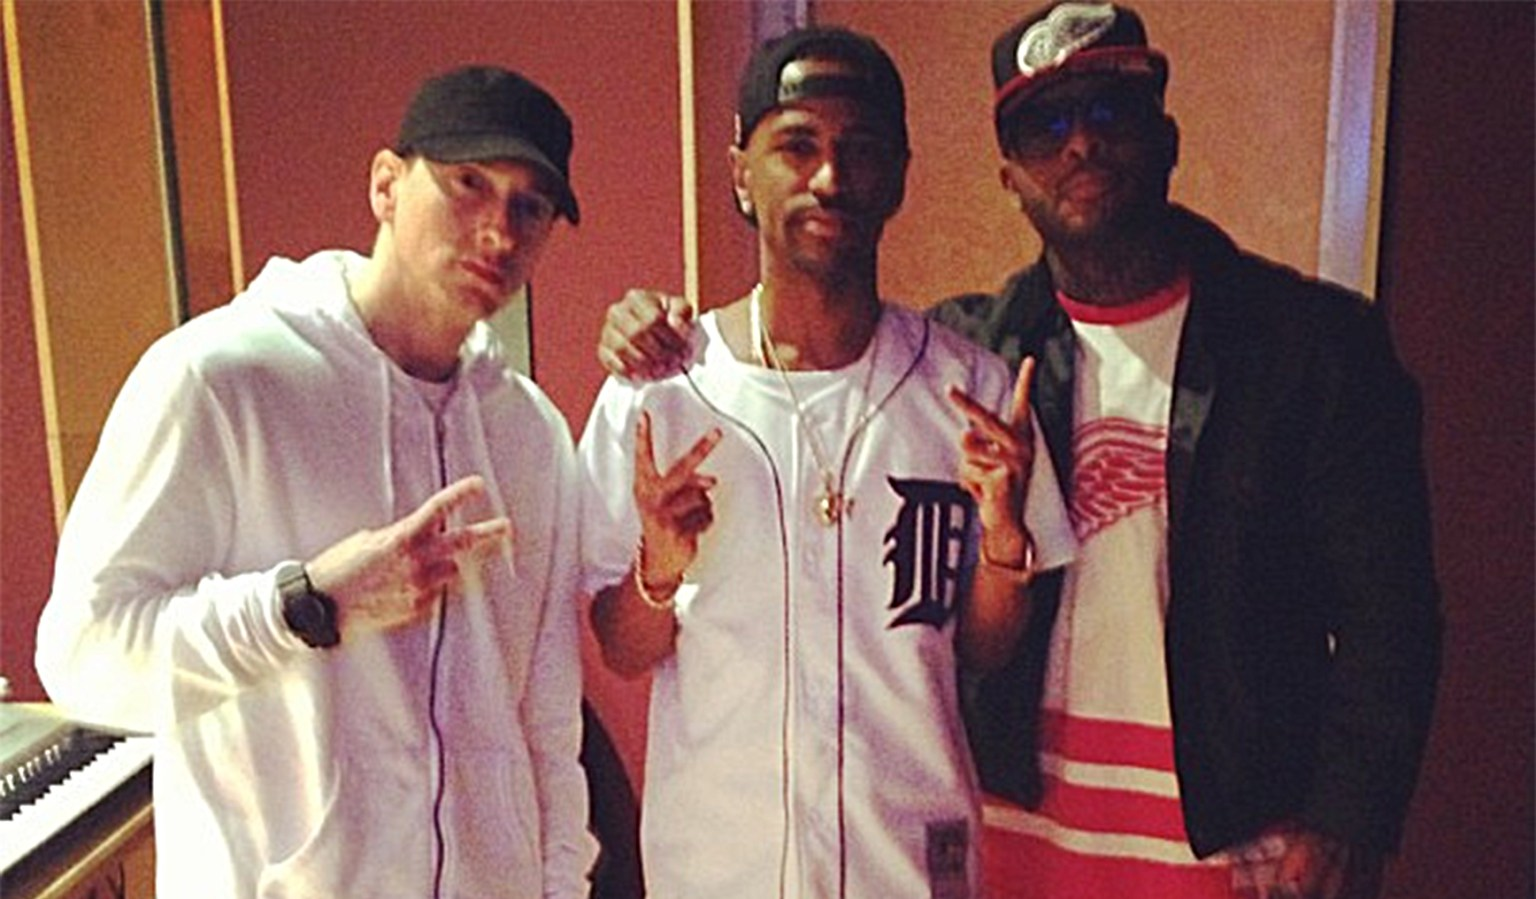 eminem big sean, eminem friday night cypher, eminem royce da 5 9